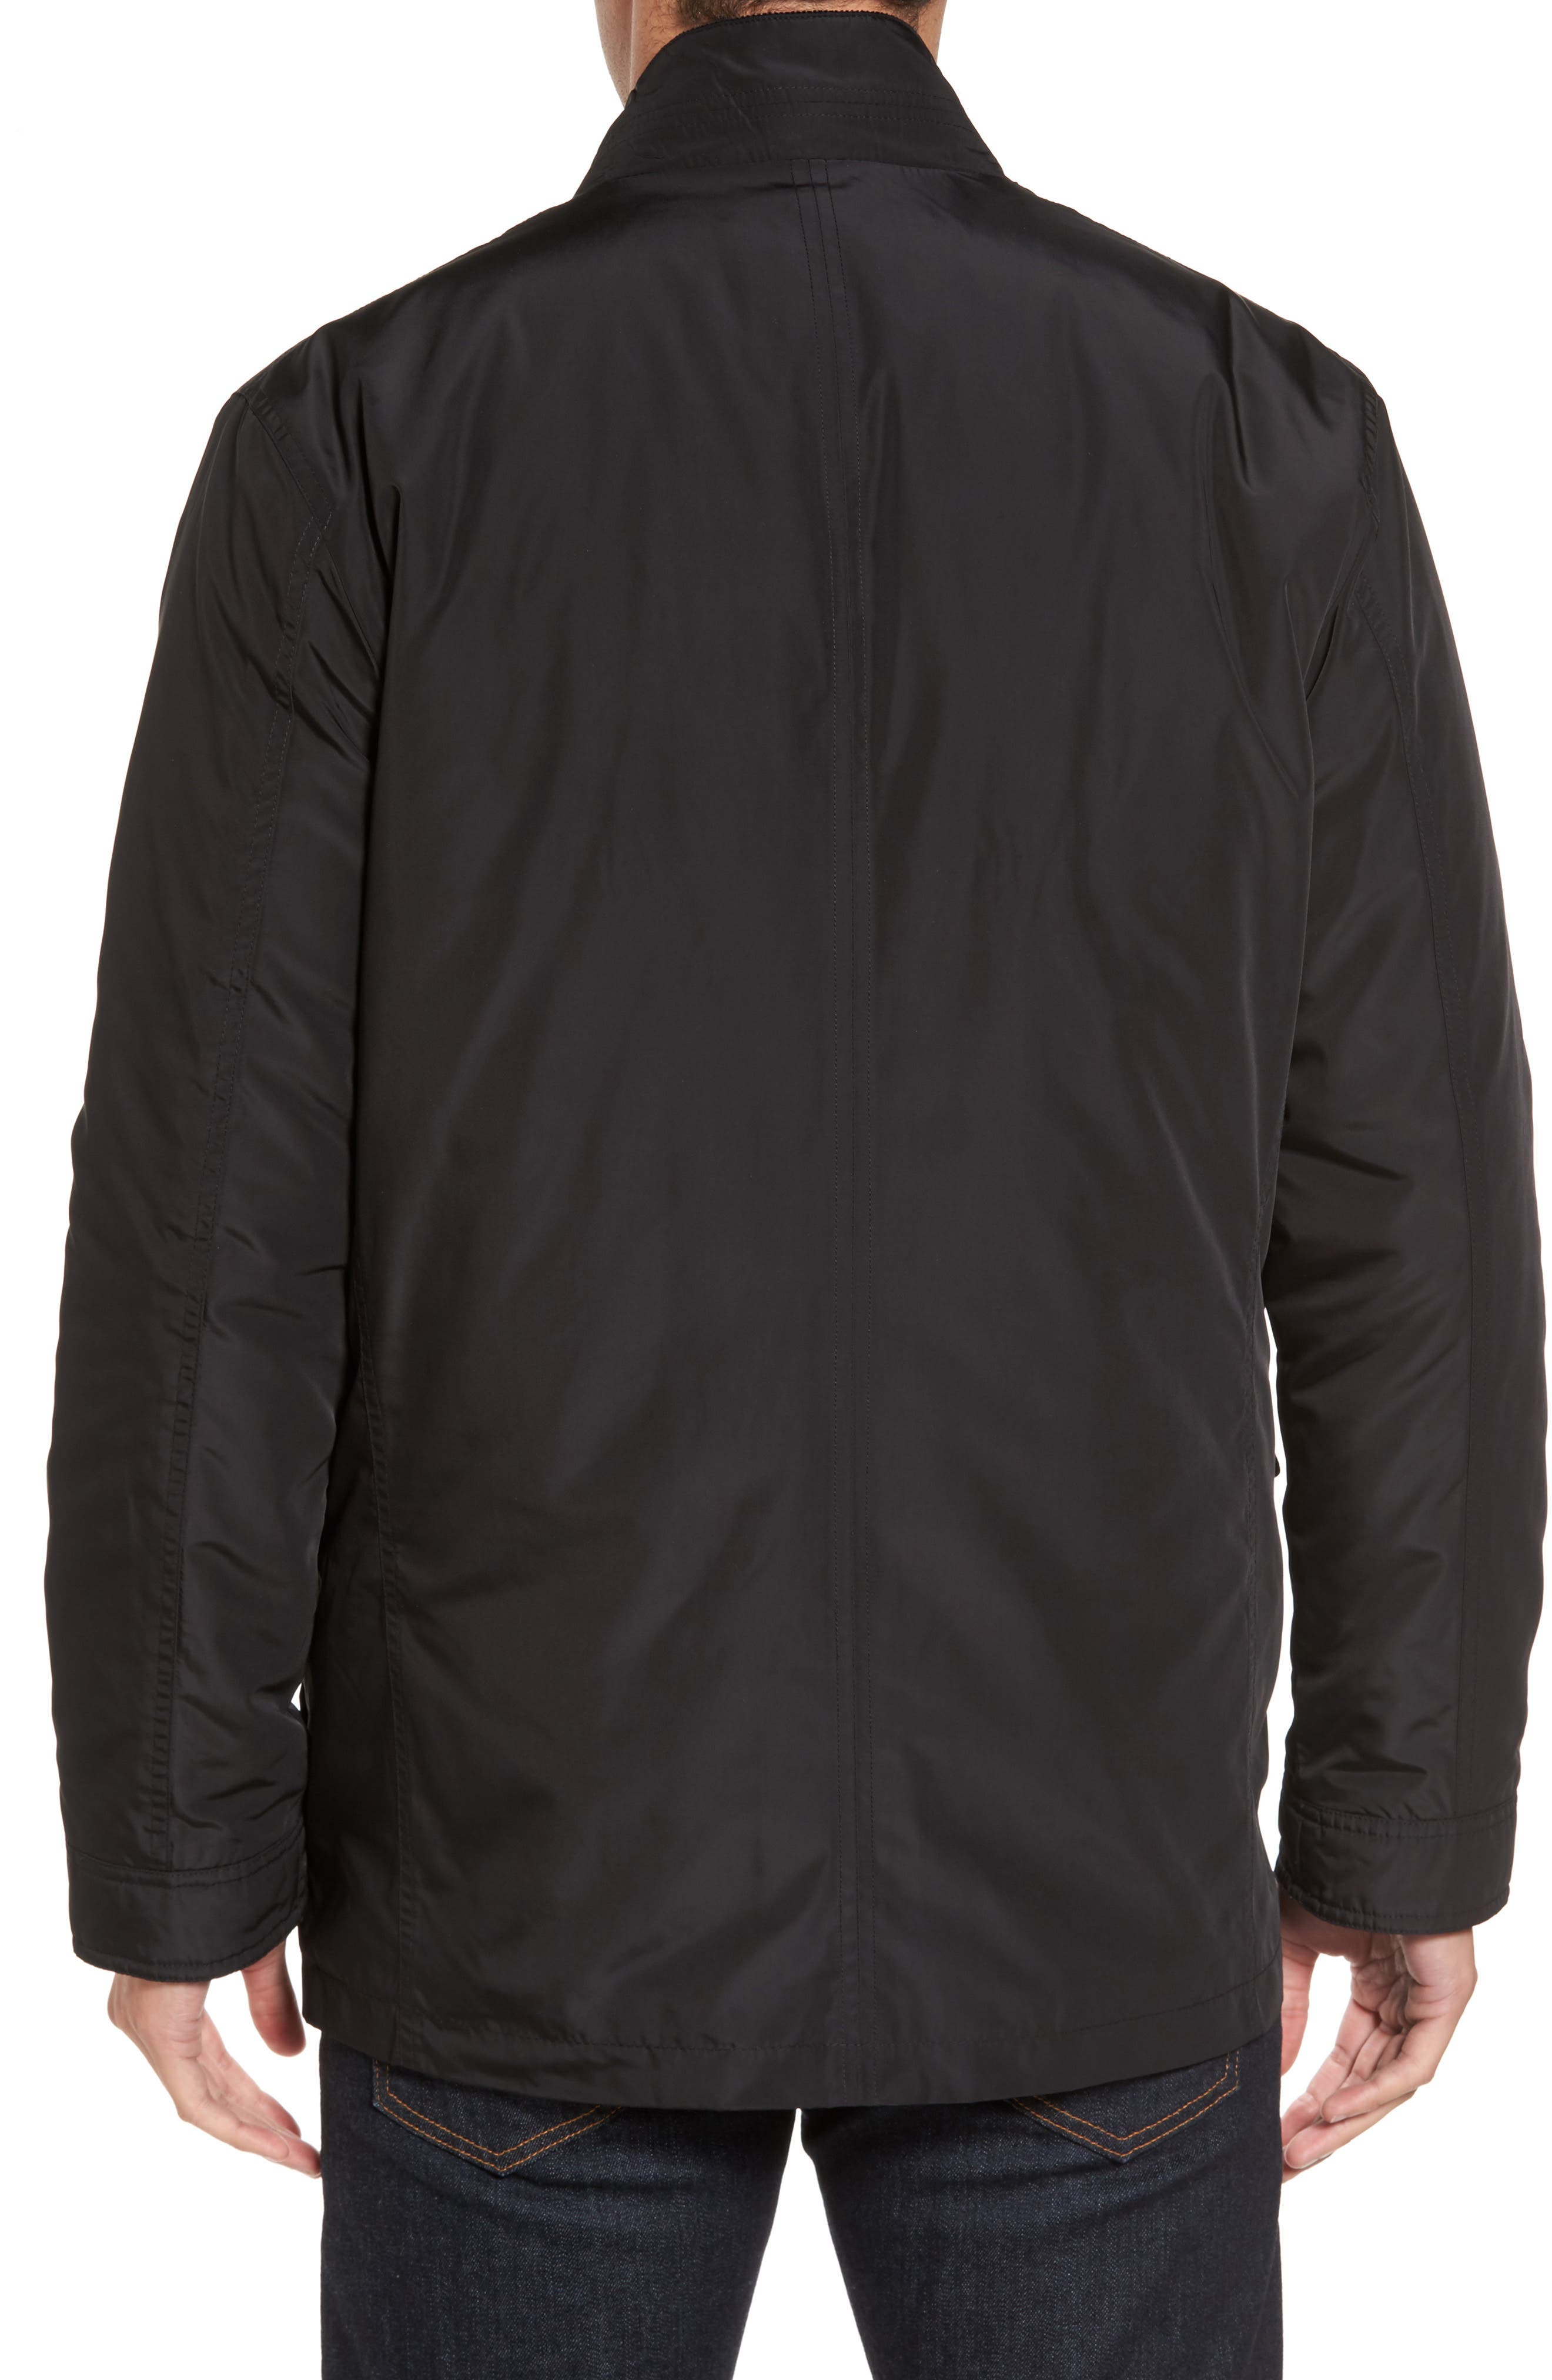 Coat with Removable Bomber Jacket,                             Alternate thumbnail 2, color,                             001